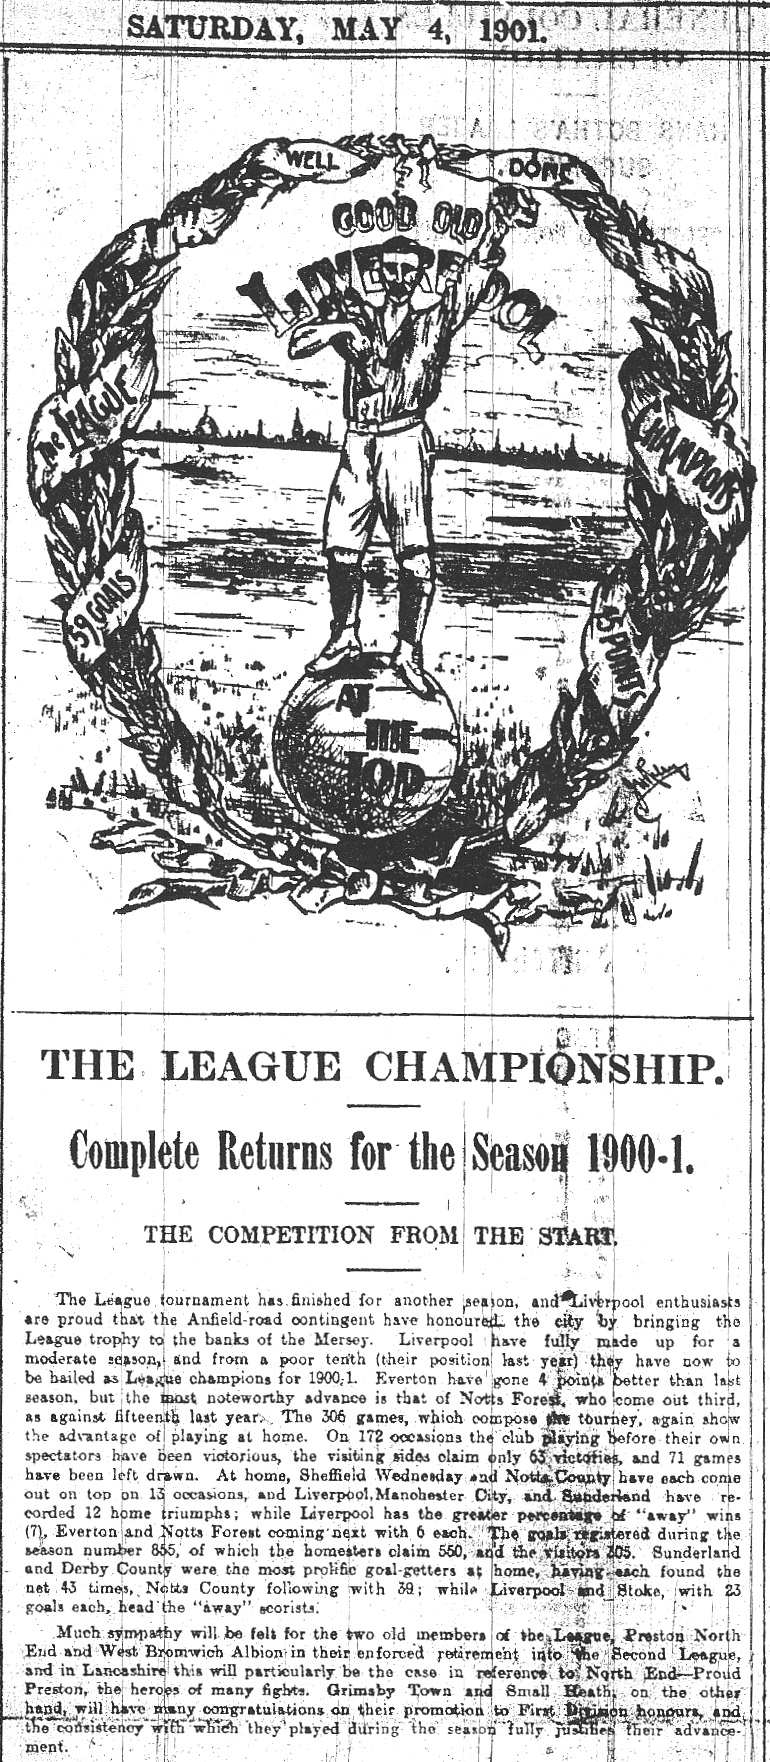 Good old Liverpool champions - 4 May 1901